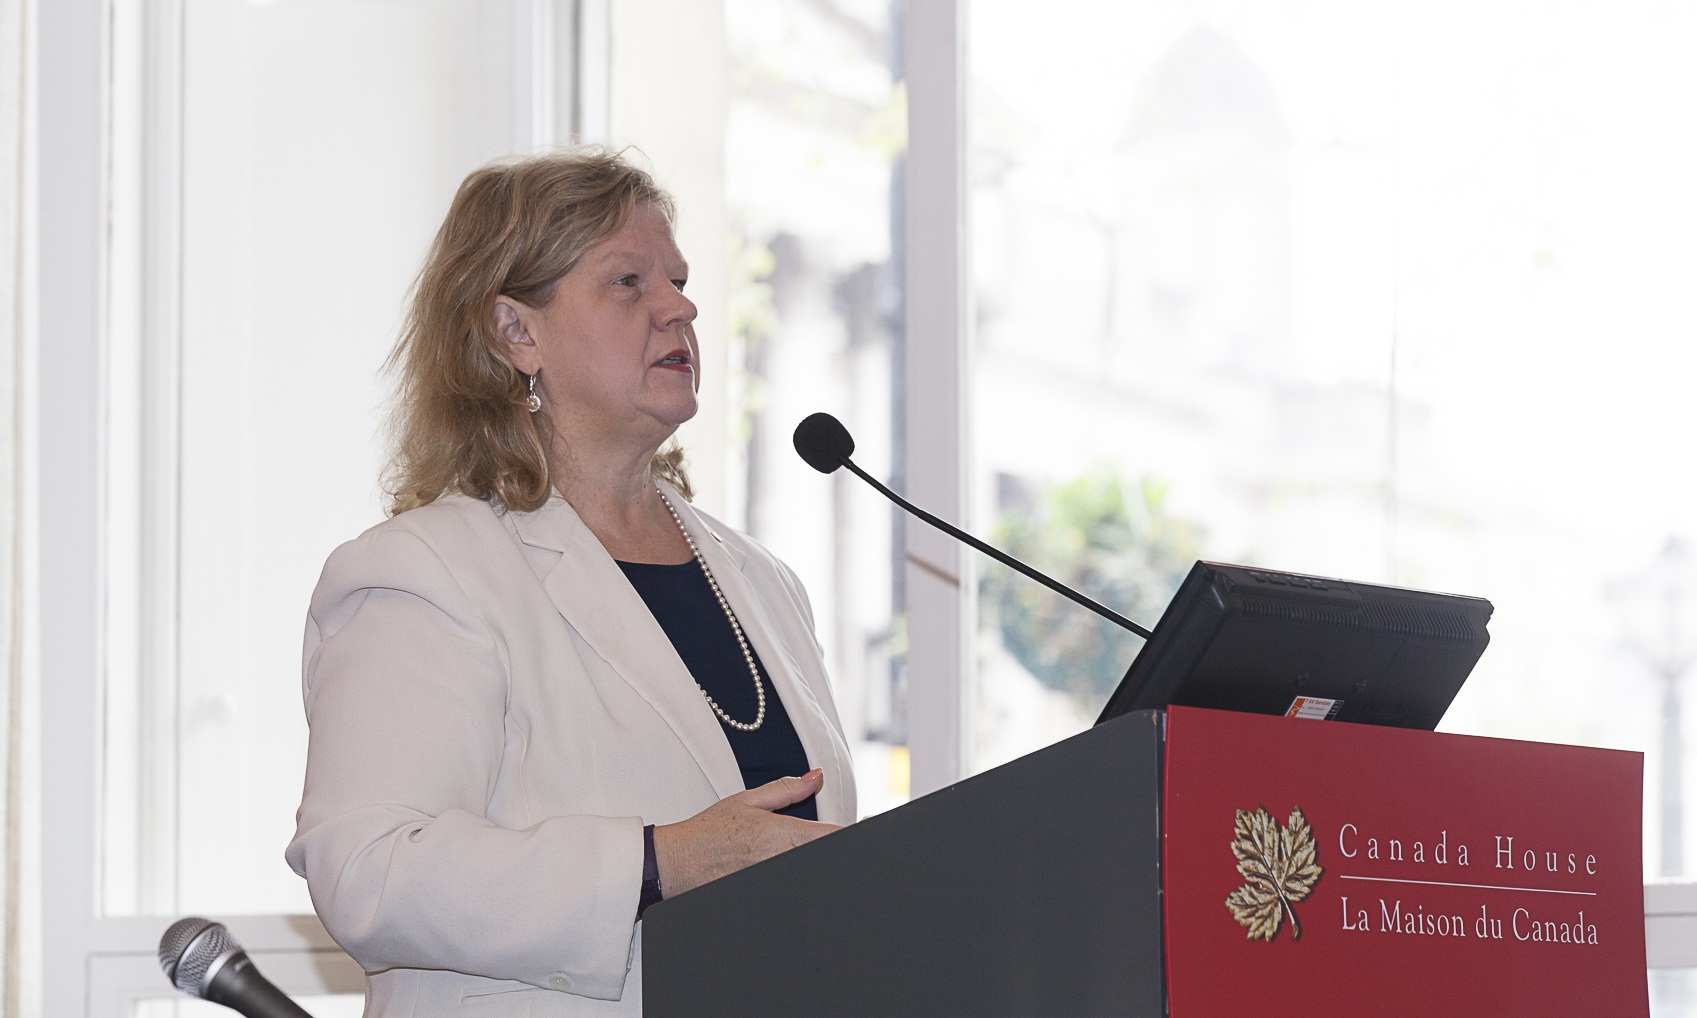 Janice, Charette, High Commissioner of Canada to the U.K., speaking at The Northern Miner's Canadian Mining Symposium in London in April 2018. Photo by Martina Lang.